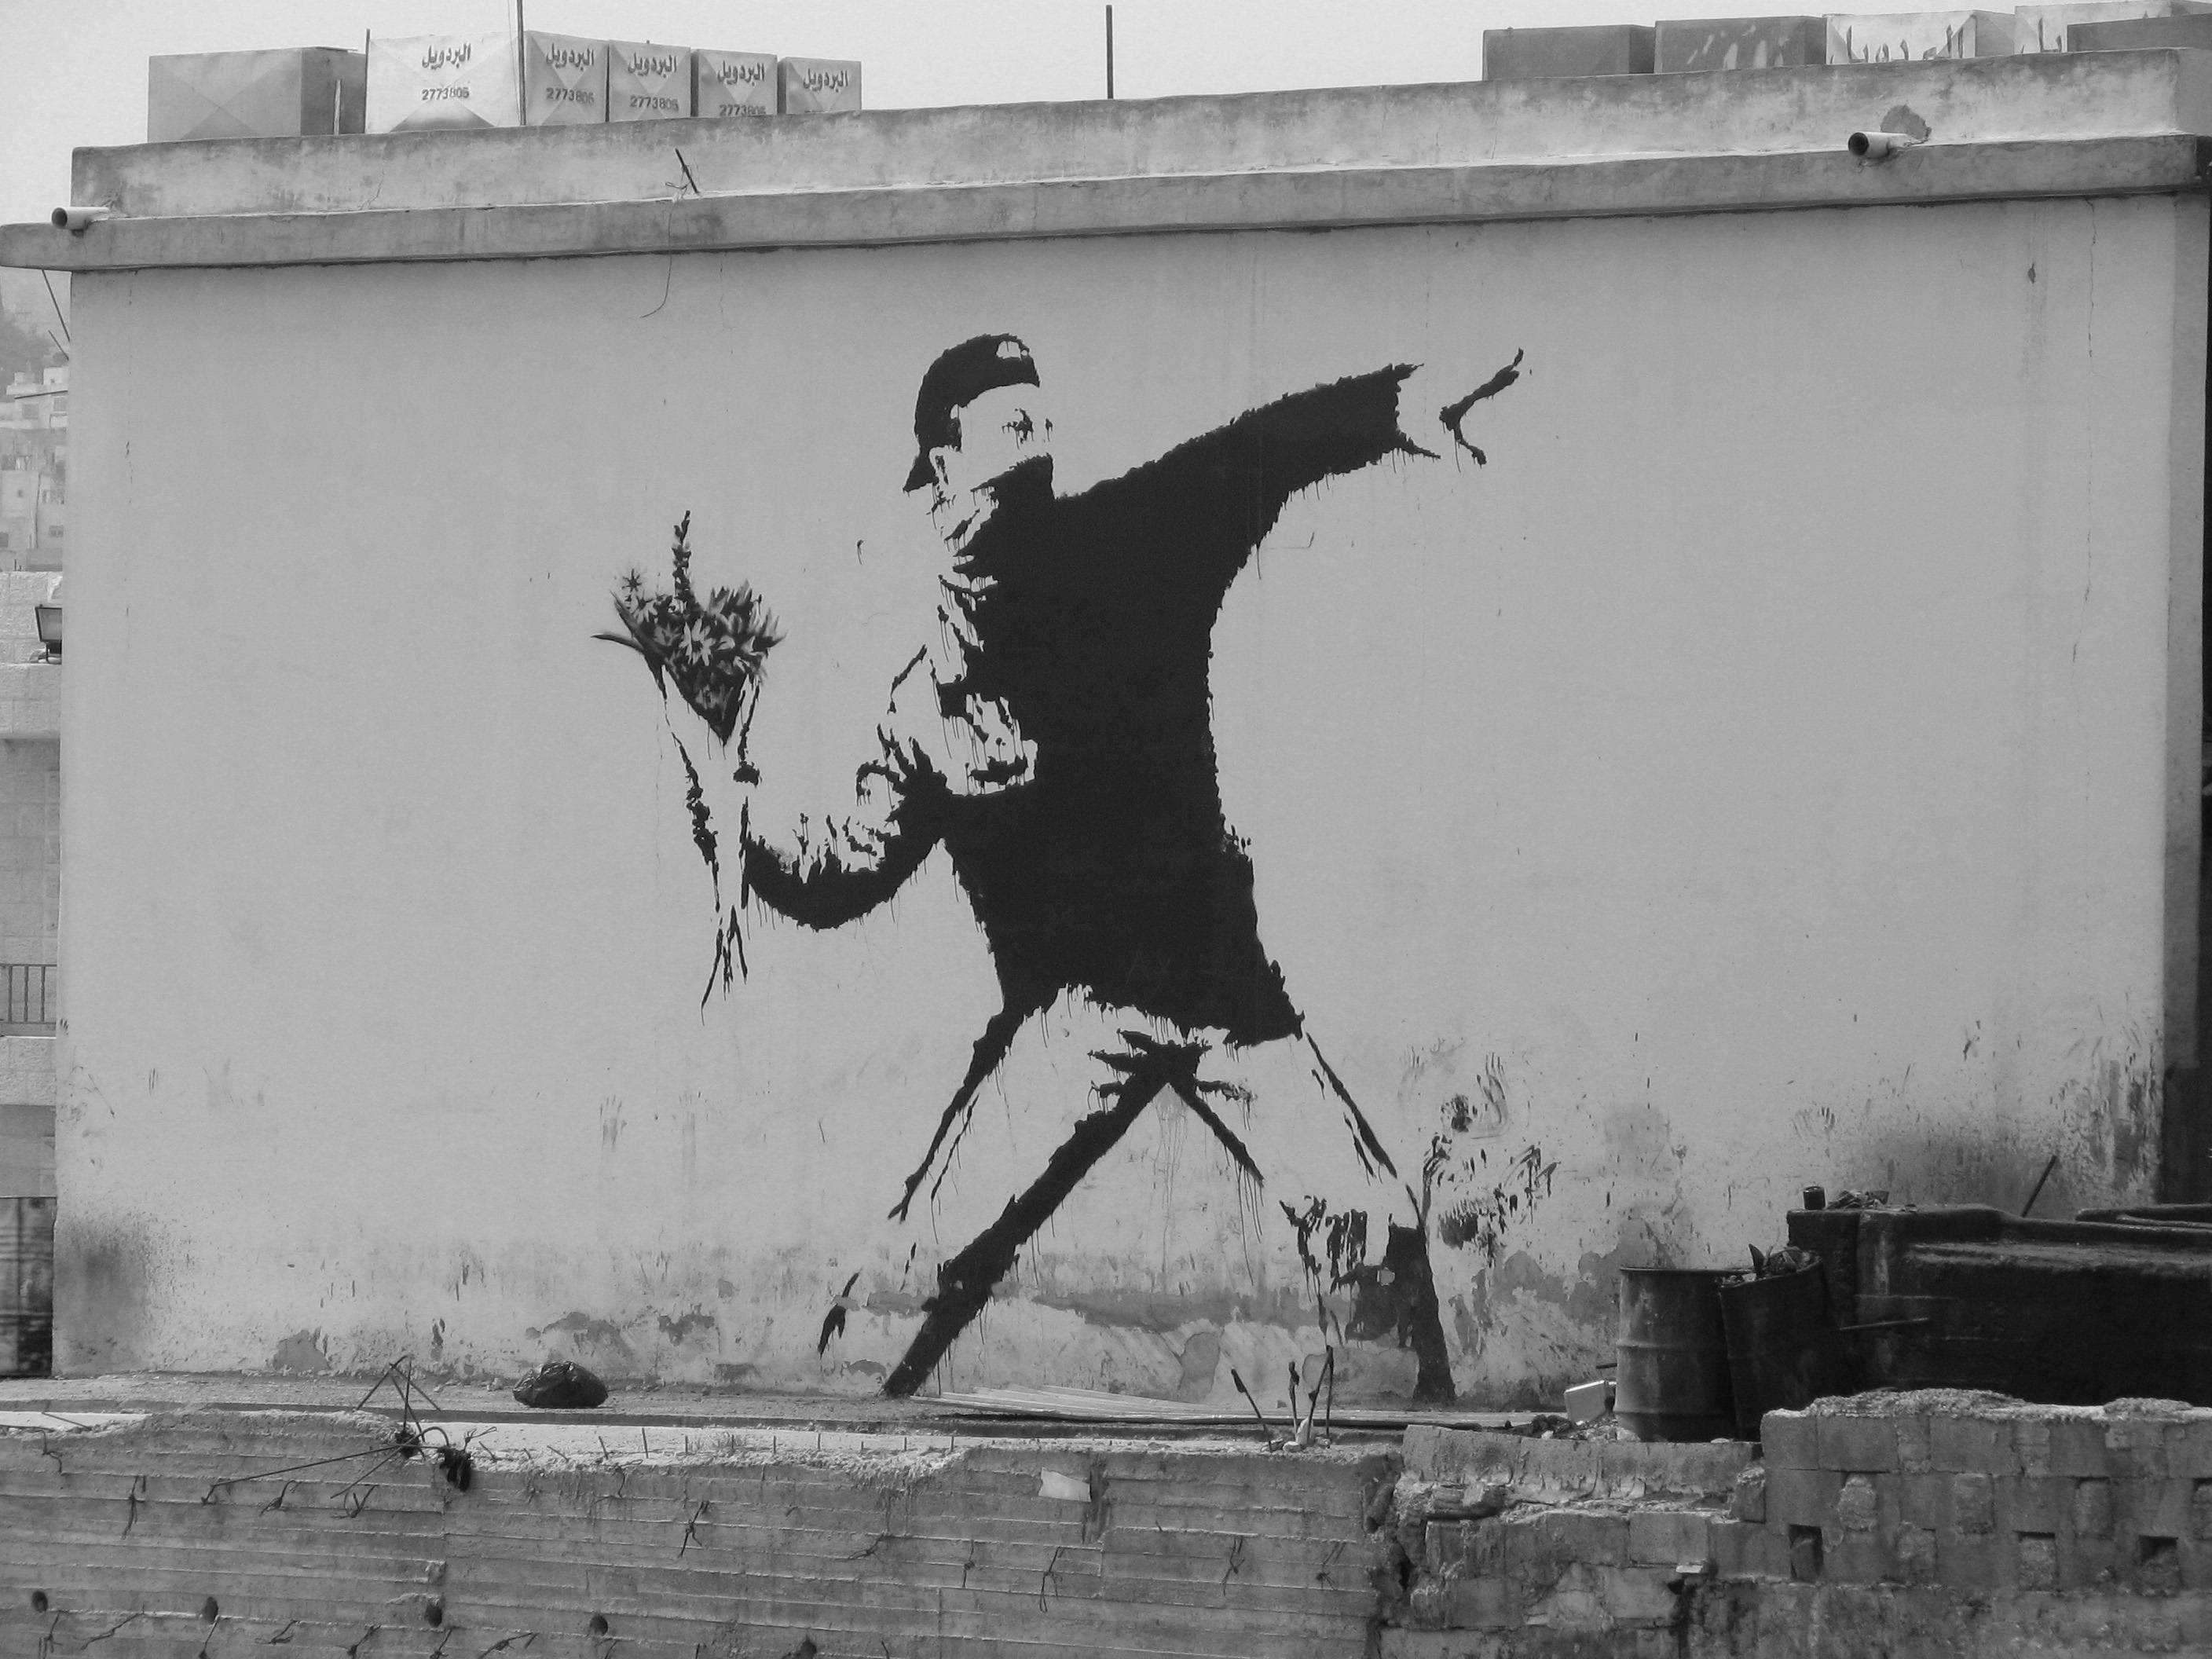 Banksy - The Flower Chucker | Android Central